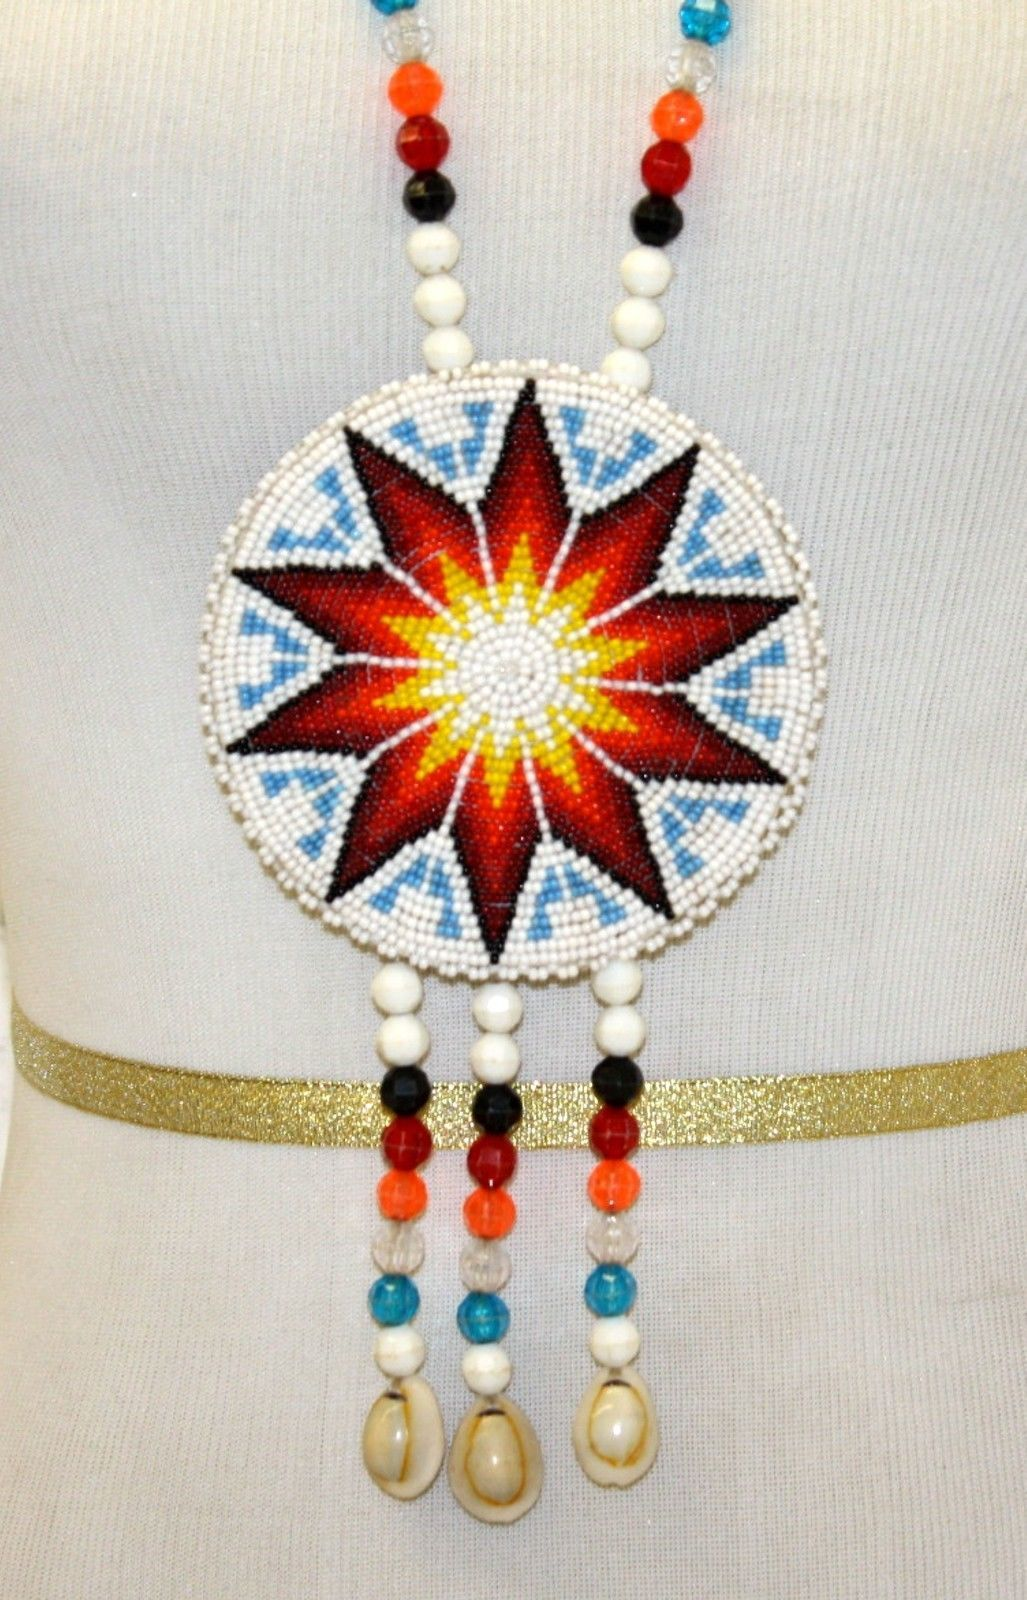 1872366c32 Nice Hand Crafted Beaded Star Design Rosette Native American Indian  Necklace | eBay